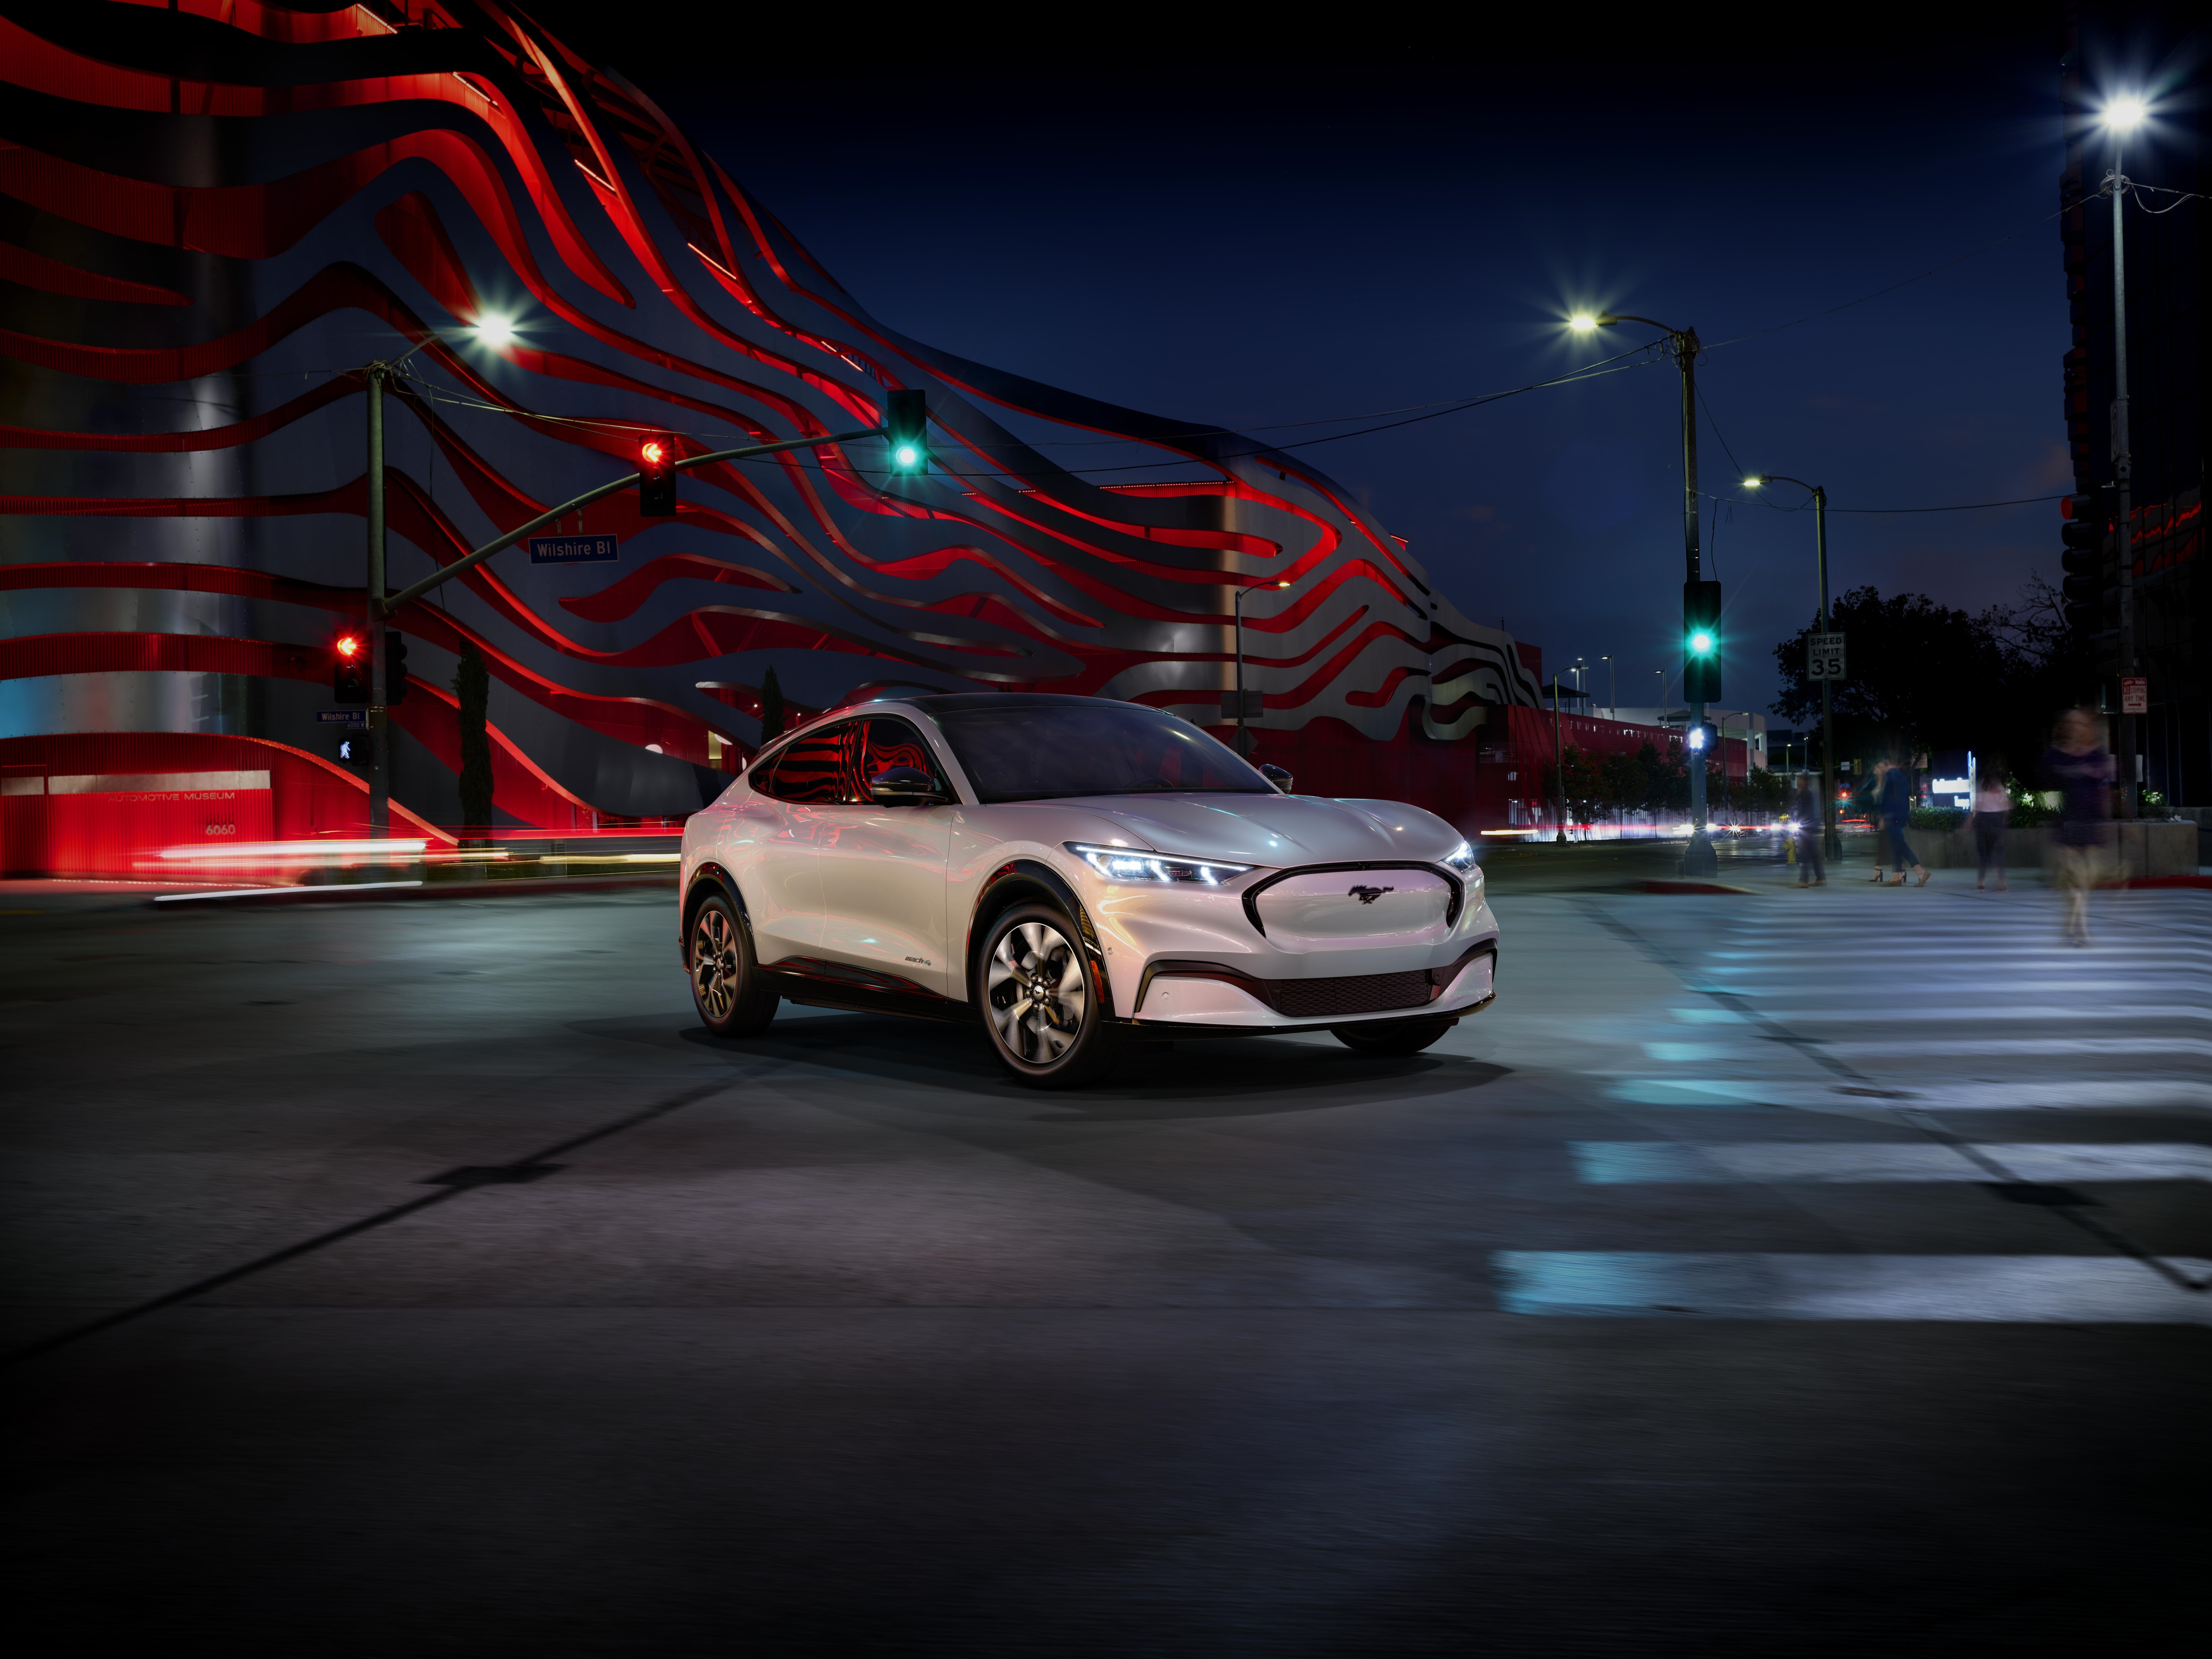 Ford Mustang Expands Family: All Electric Mustang Mach E